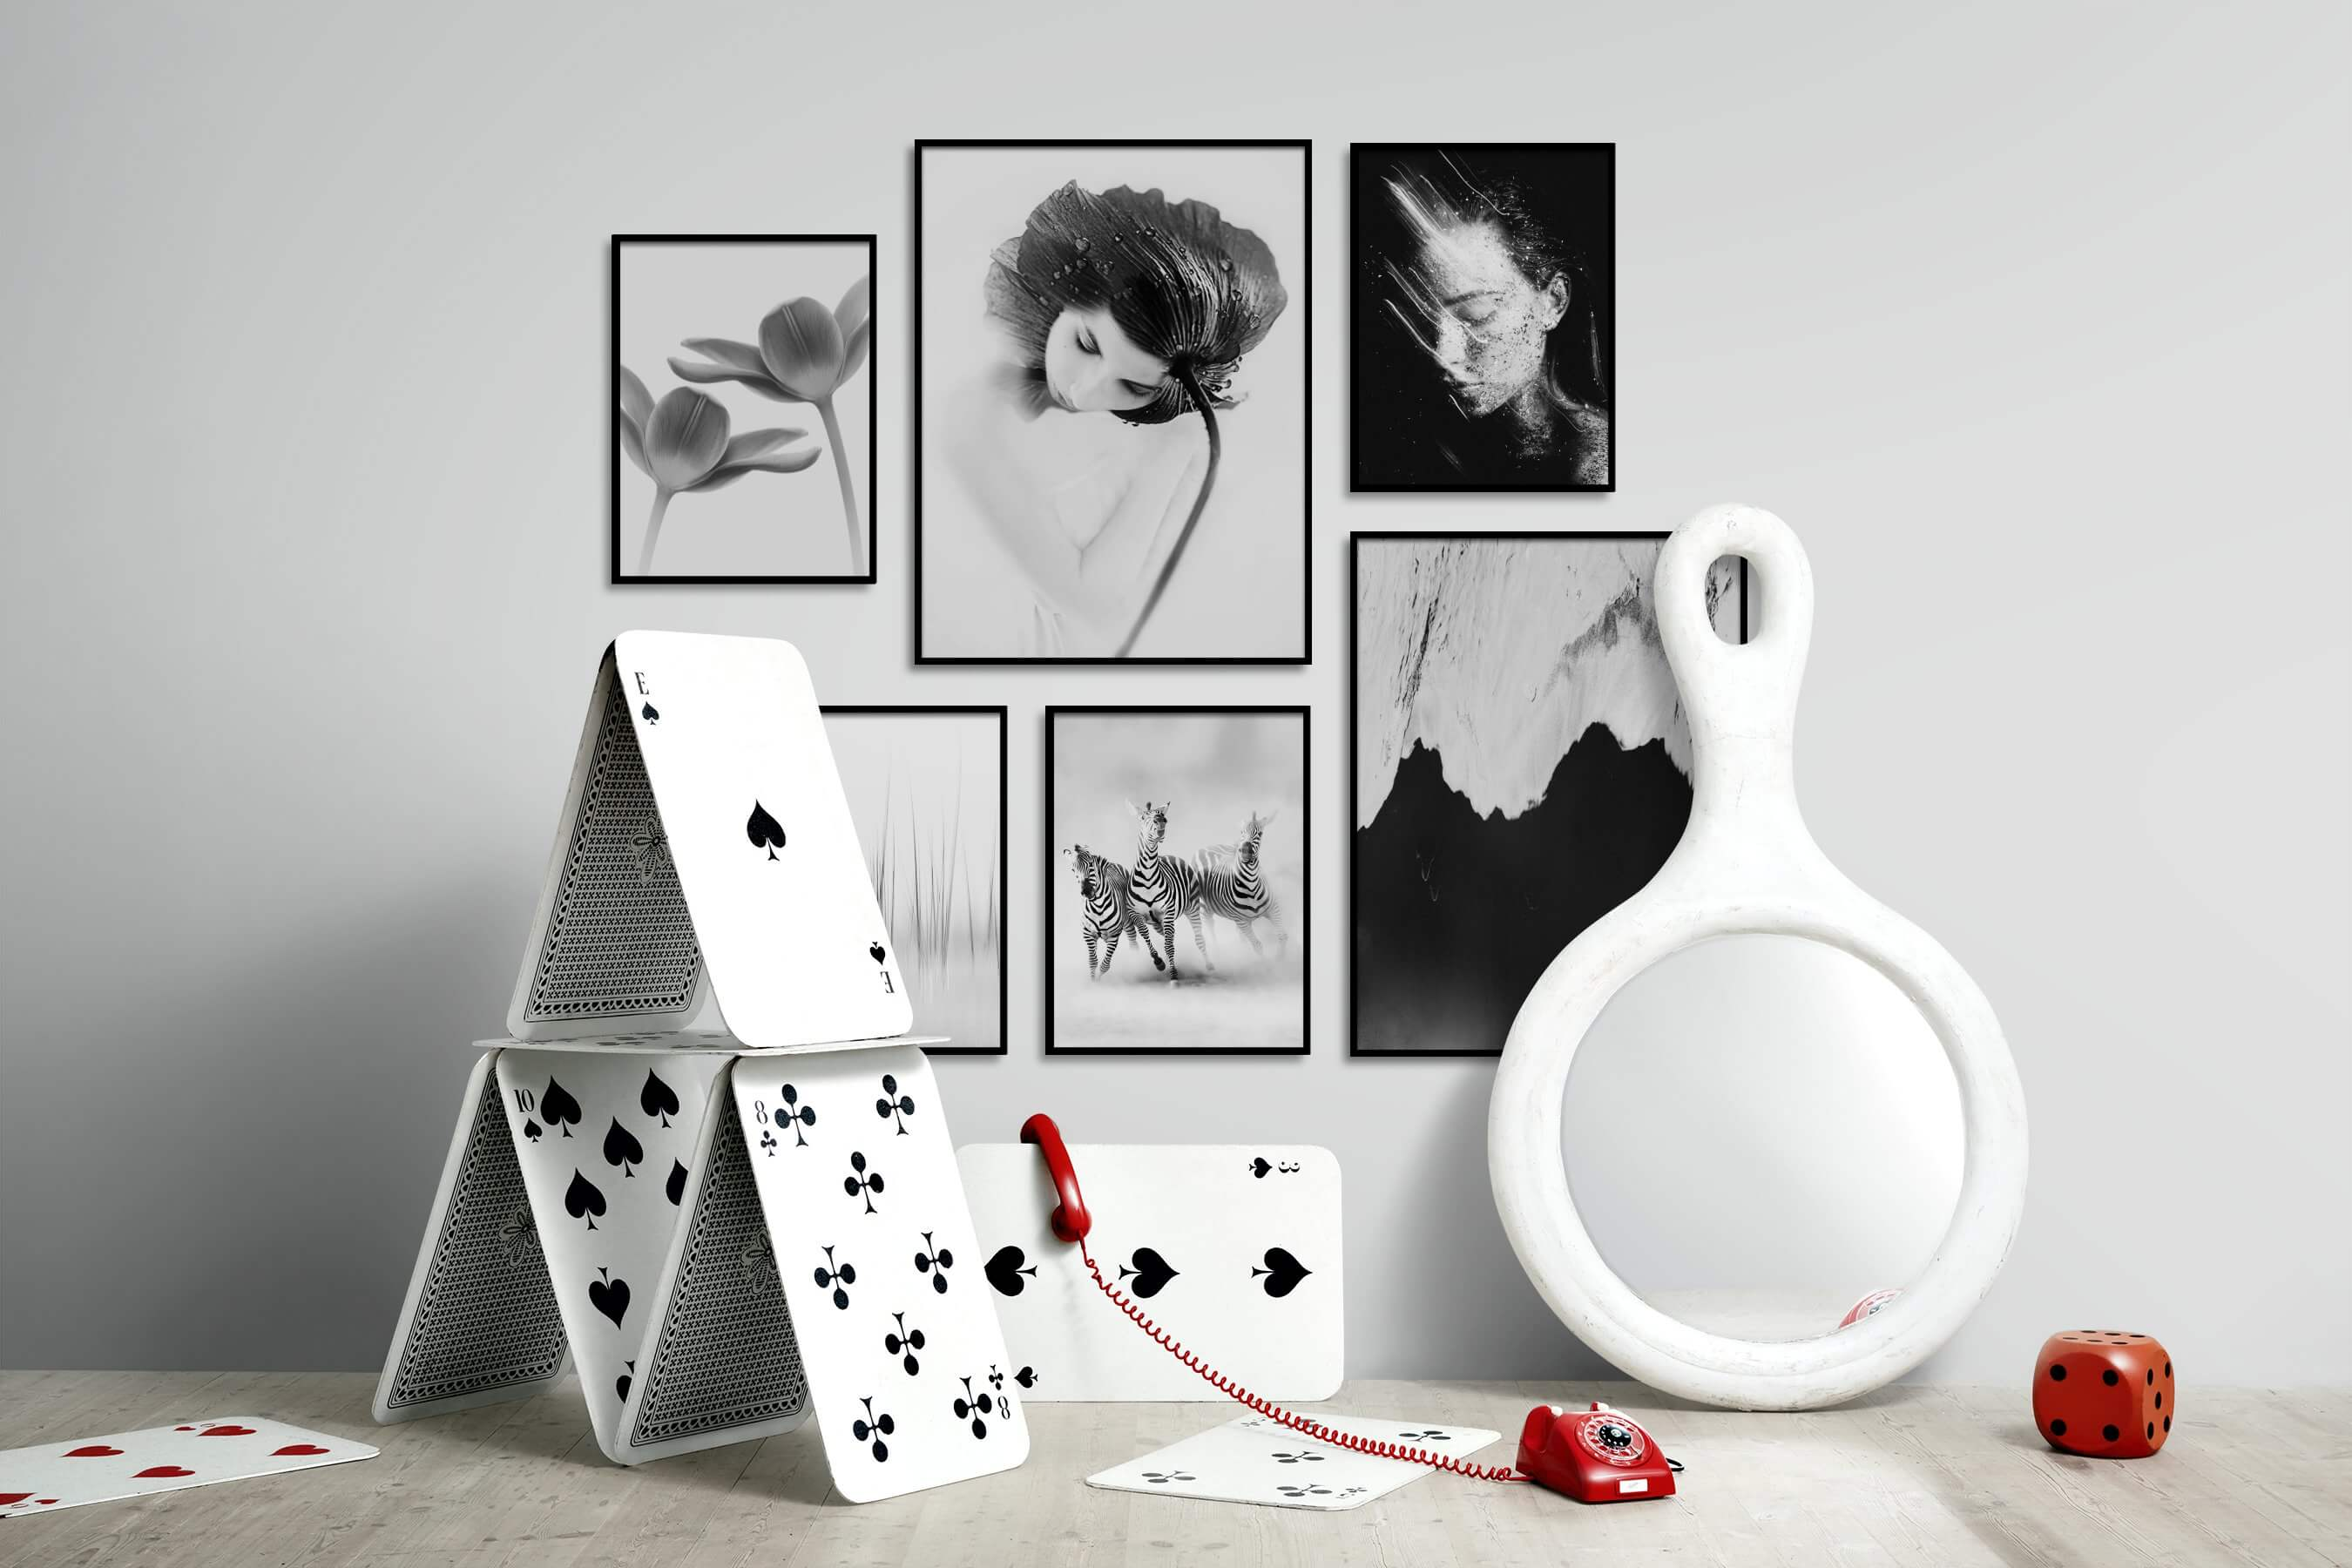 Gallery wall idea with six framed pictures arranged on a wall depicting Black & White, For the Minimalist, Flowers & Plants, Vintage, Artsy, For the Moderate, Bright Tones, Mindfulness, Animals, Fashion & Beauty, Dark Tones, and Beach & Water